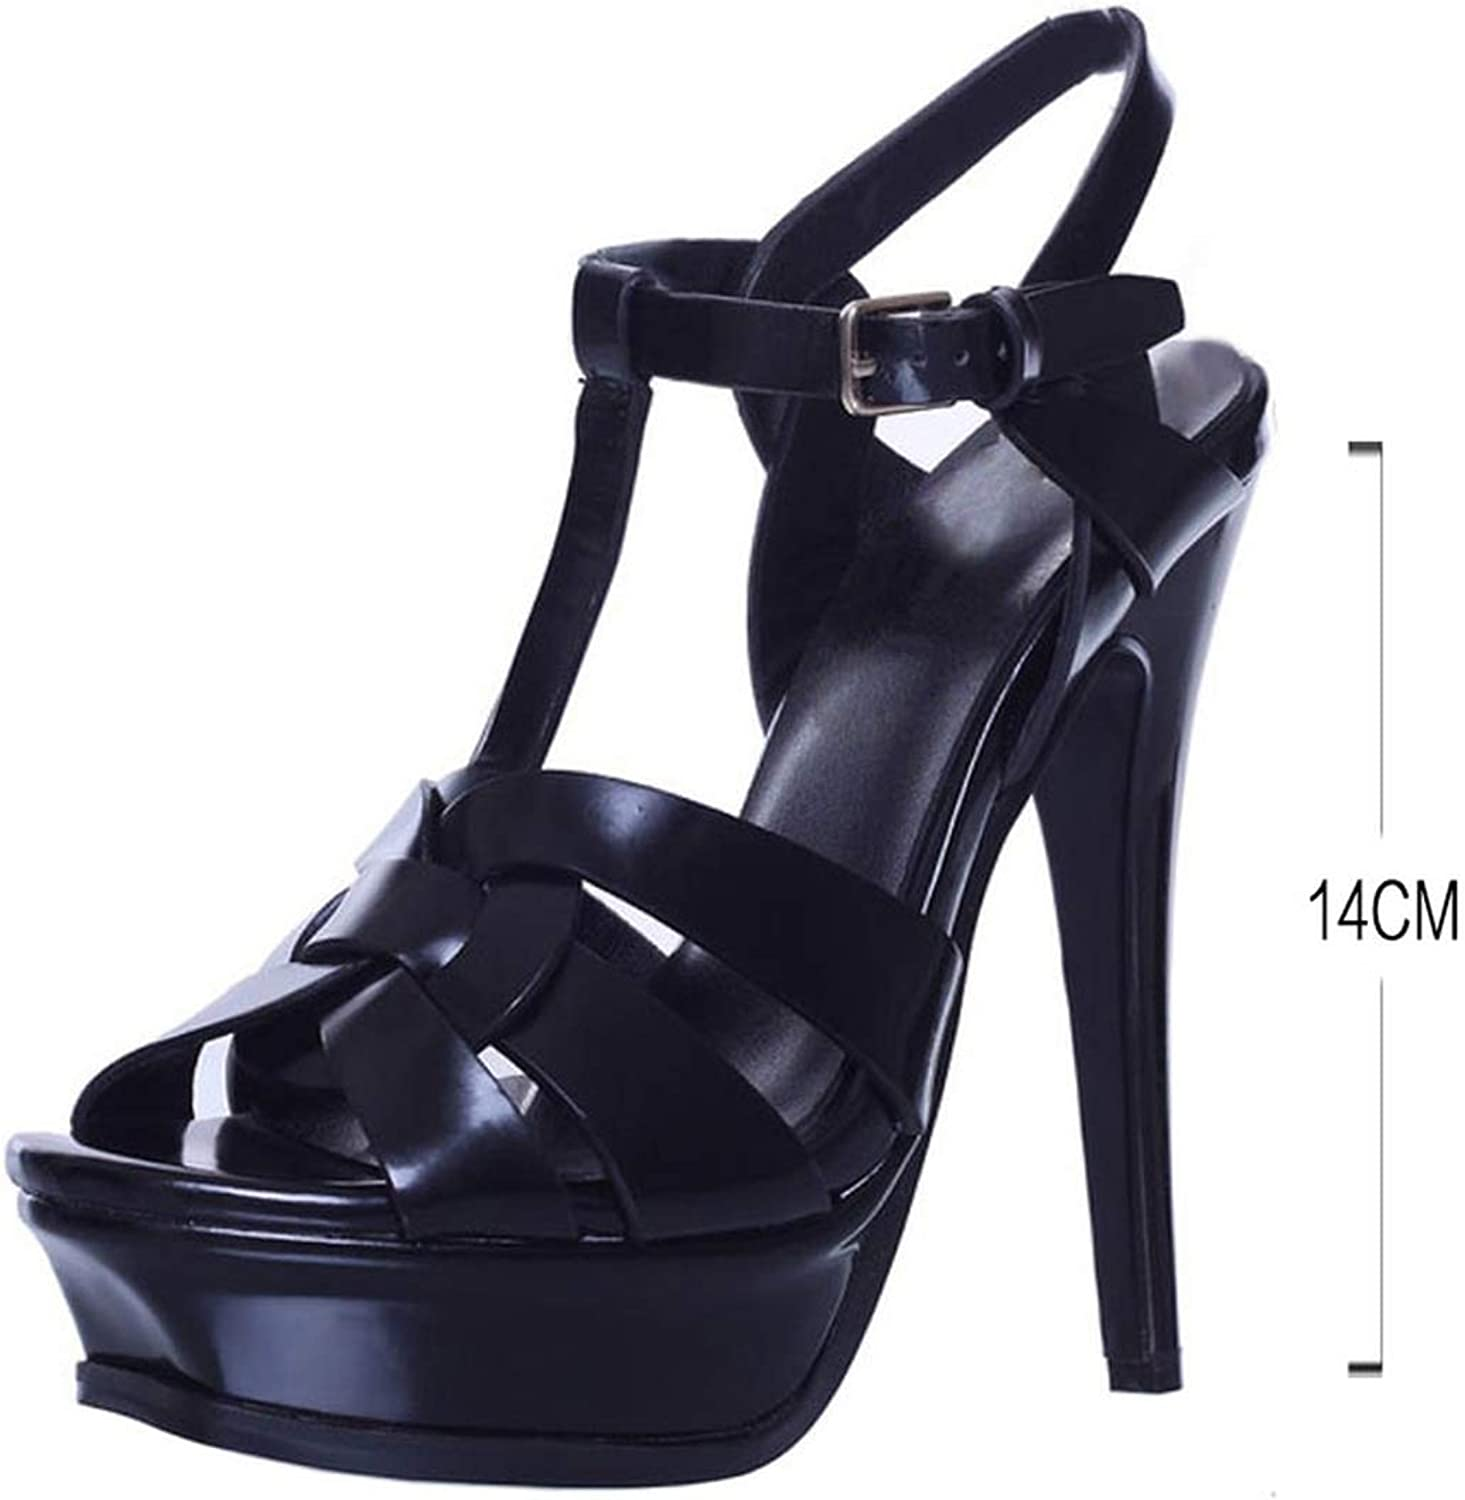 786029ab605bb 11 colors New 2019 Women shoes 14 10cm High Heels Platform shoes ...